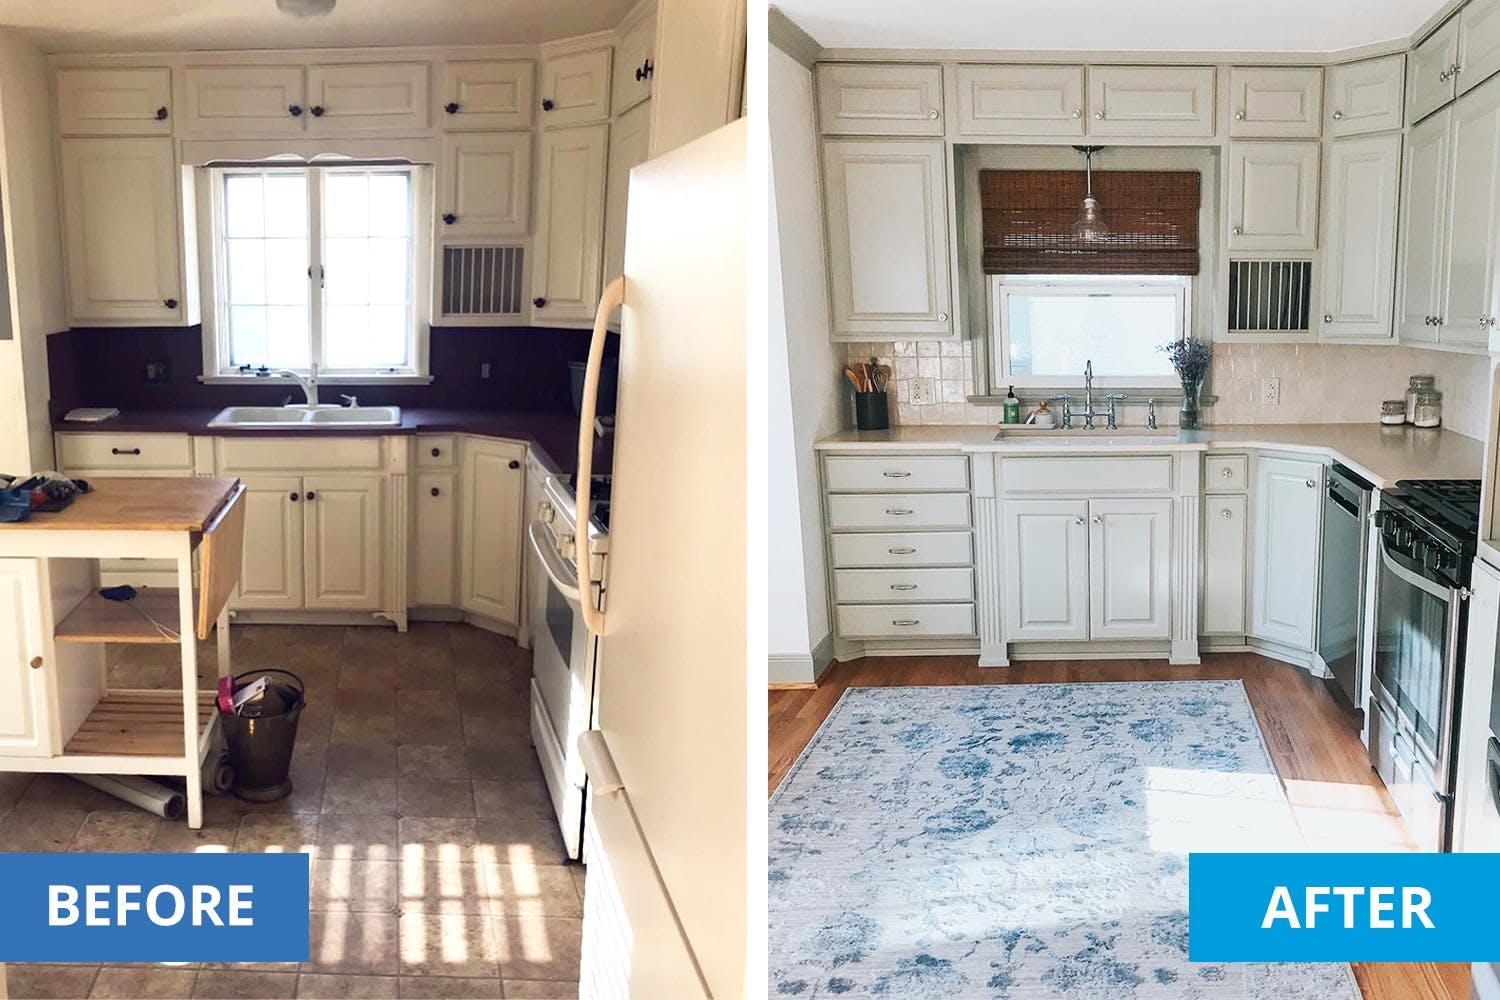 left shows a kitchen pre-makeover. Right shows the kitchen with new floors, new counters and new window treatments.